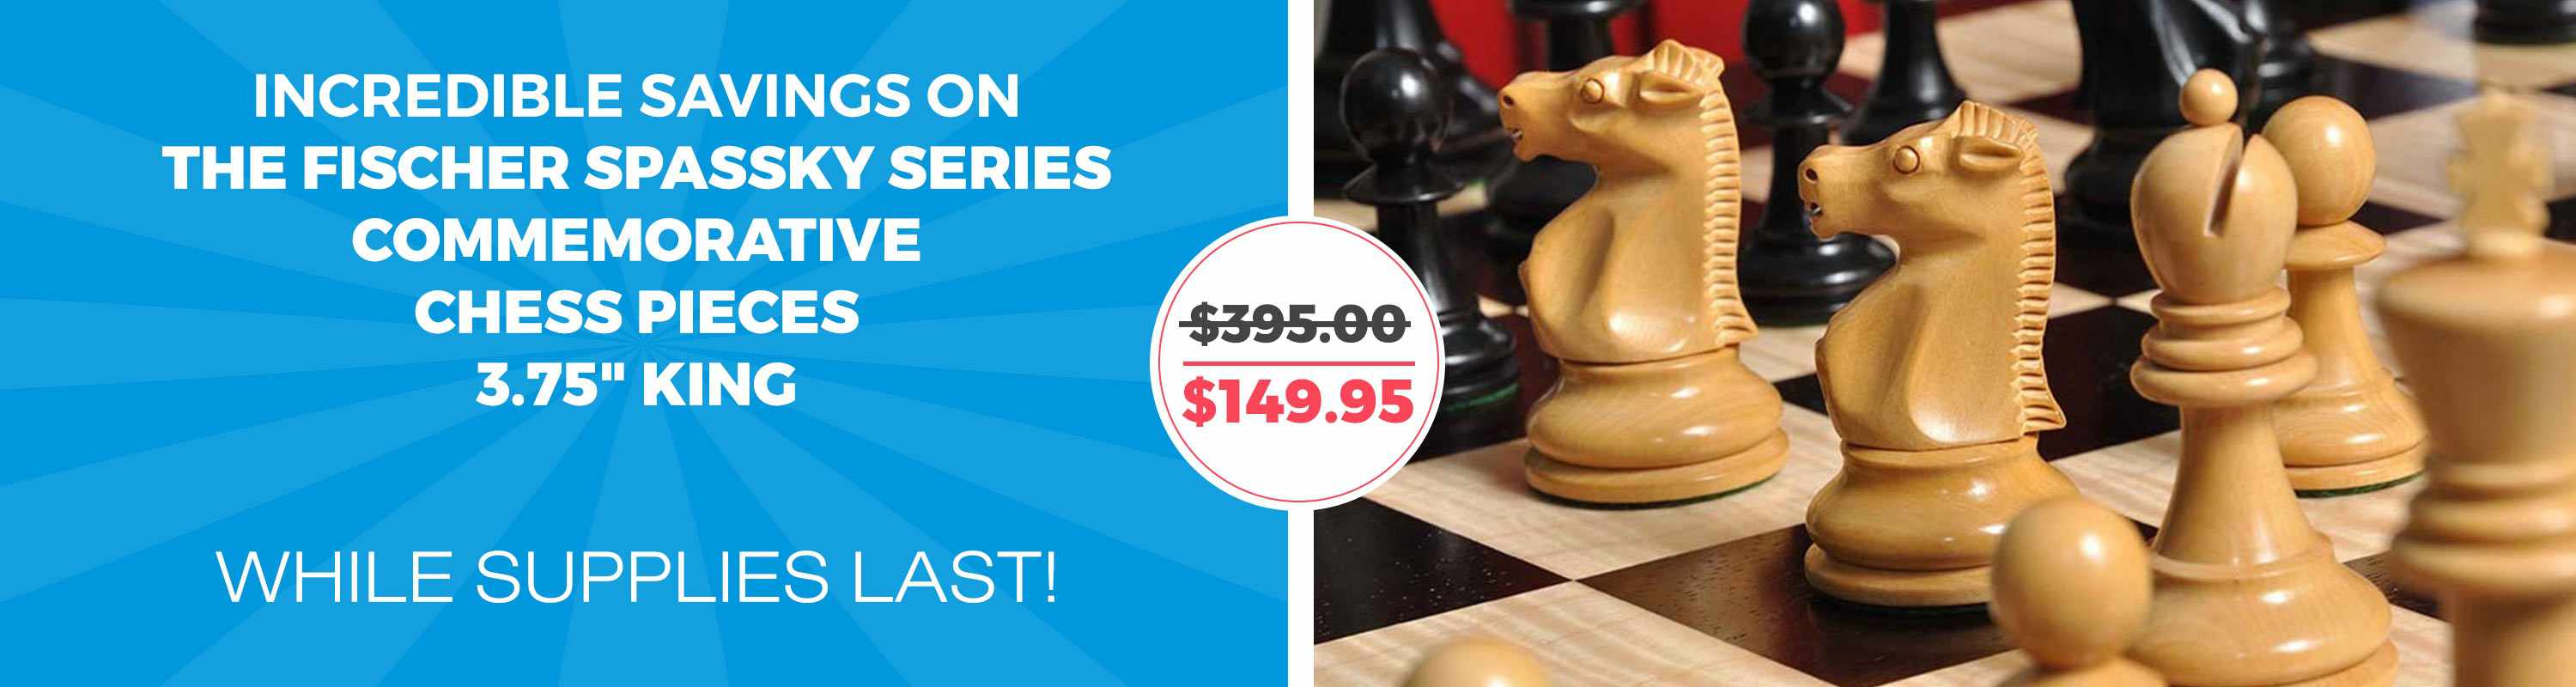 The Fischer Spasskey Commemorative Chess Pieces